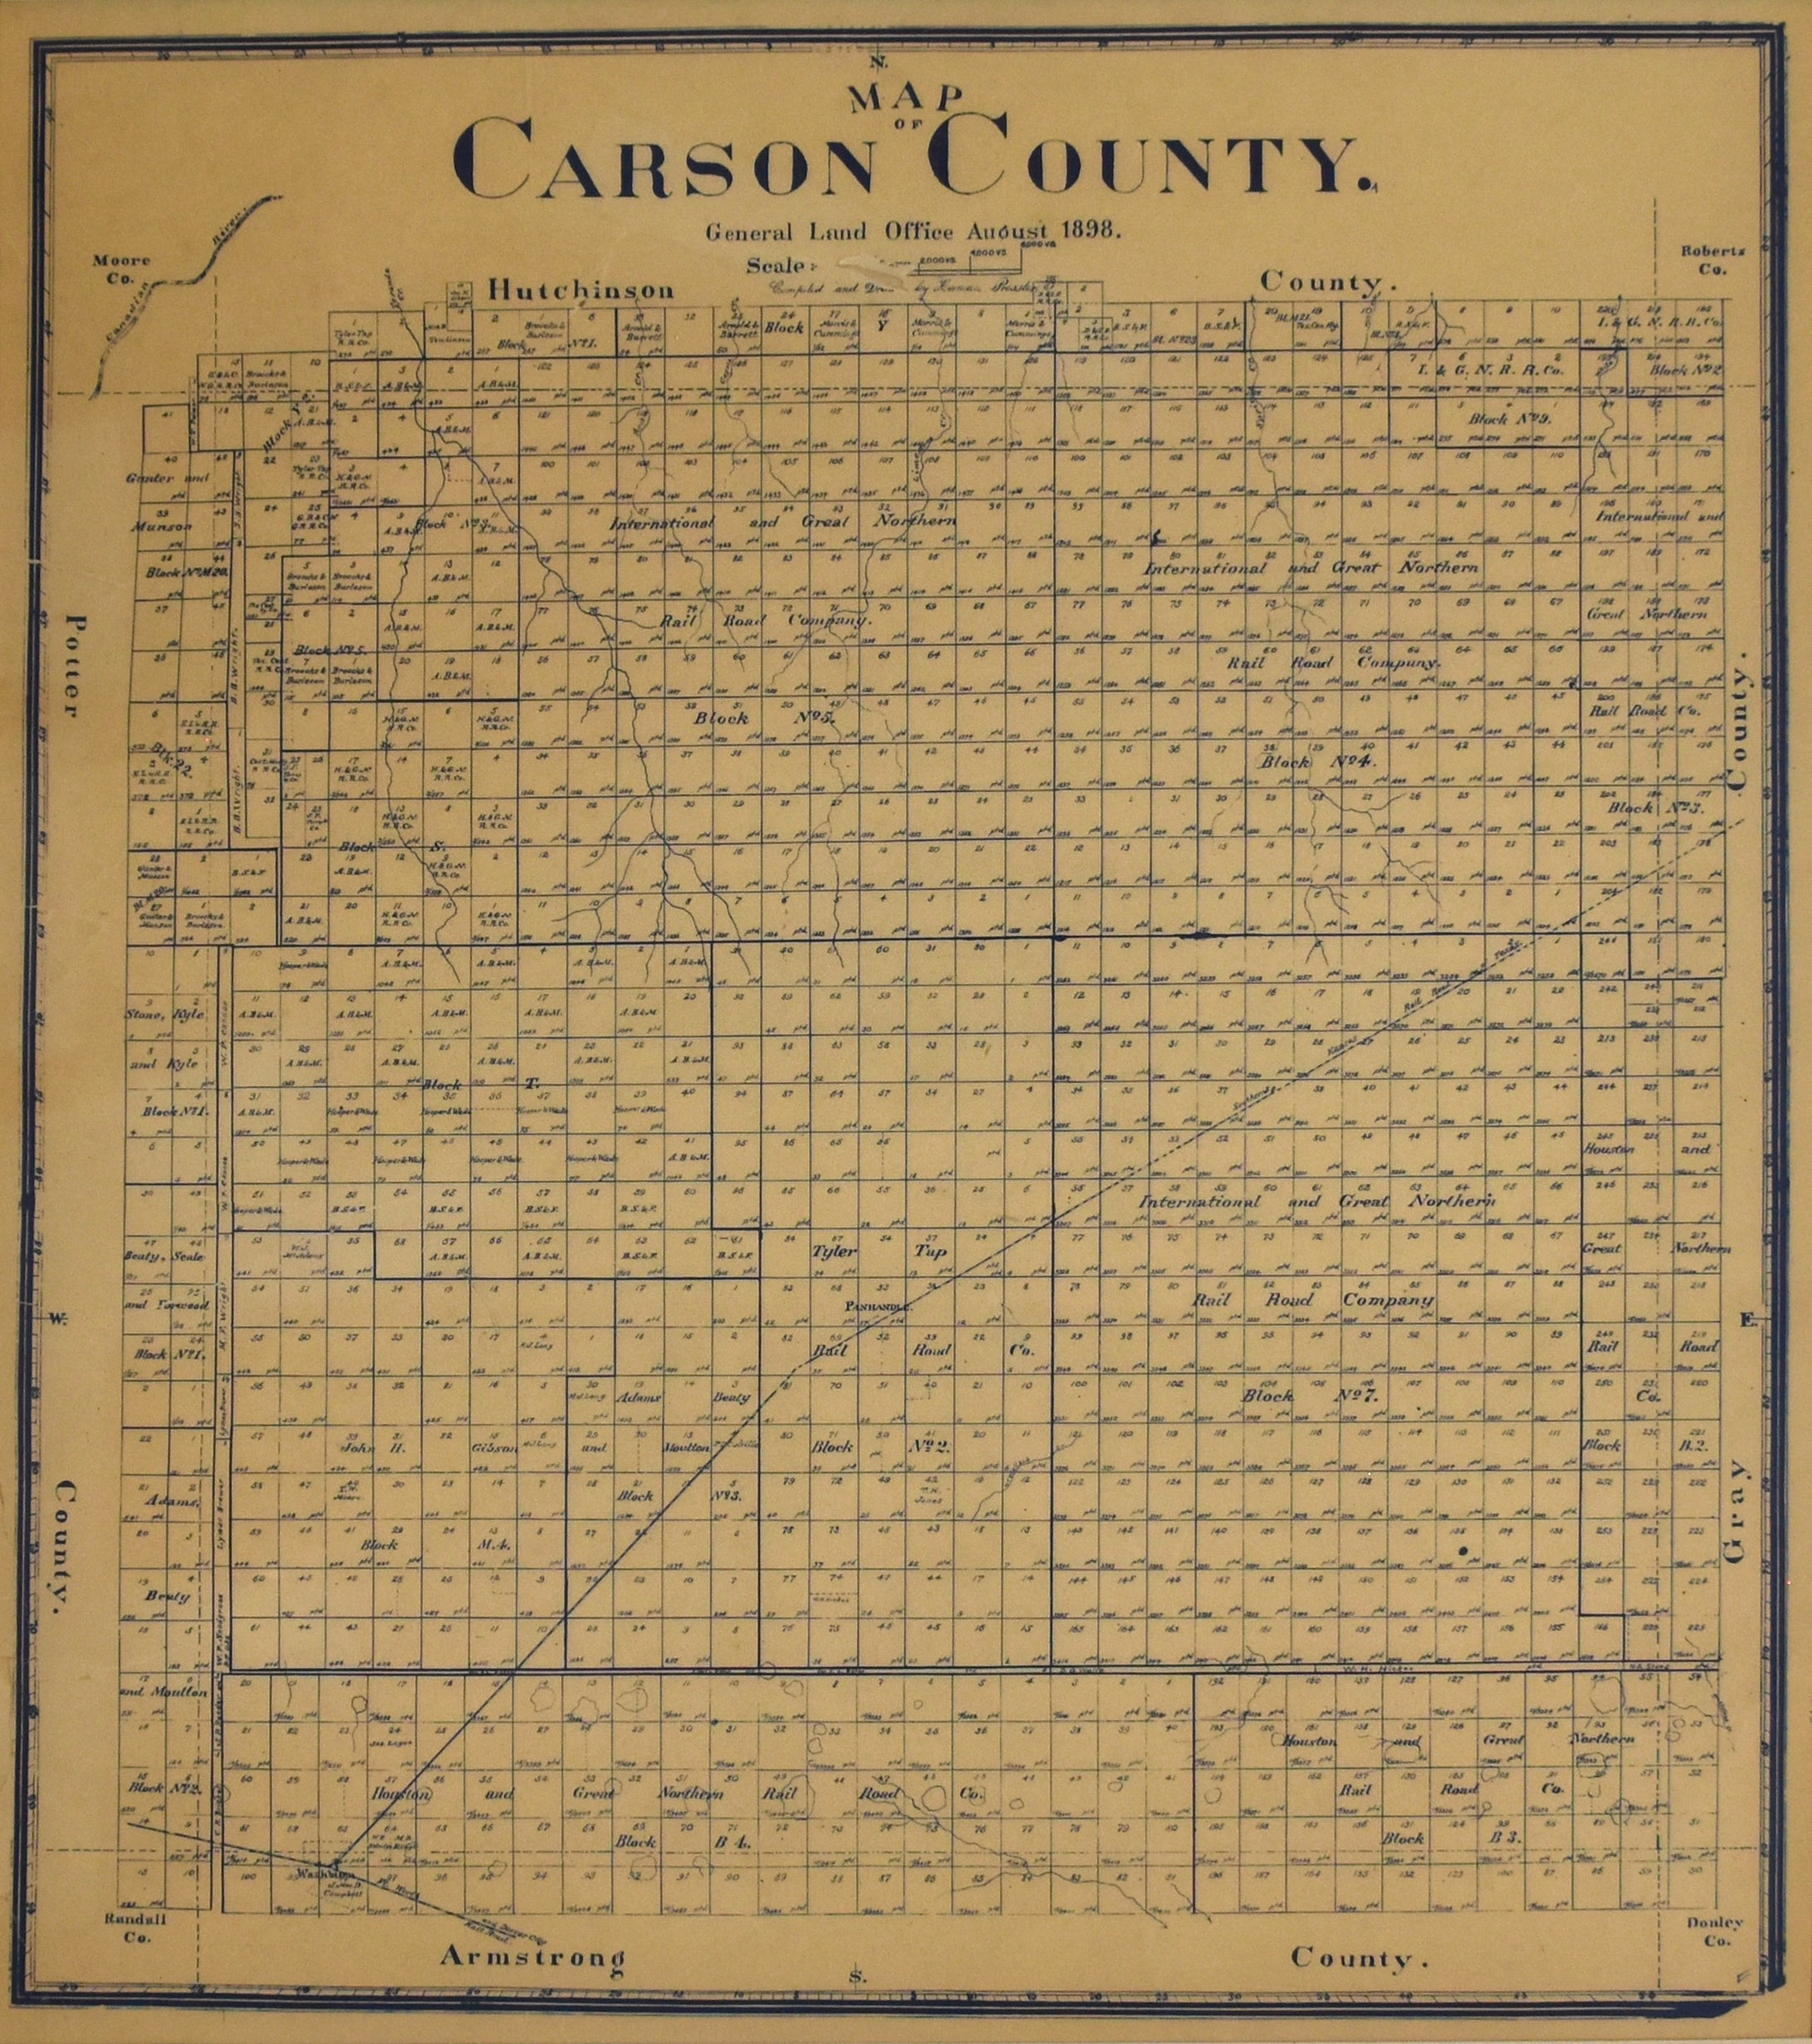 Carson County Texas: General Land Office (Herman Pressler) 1898